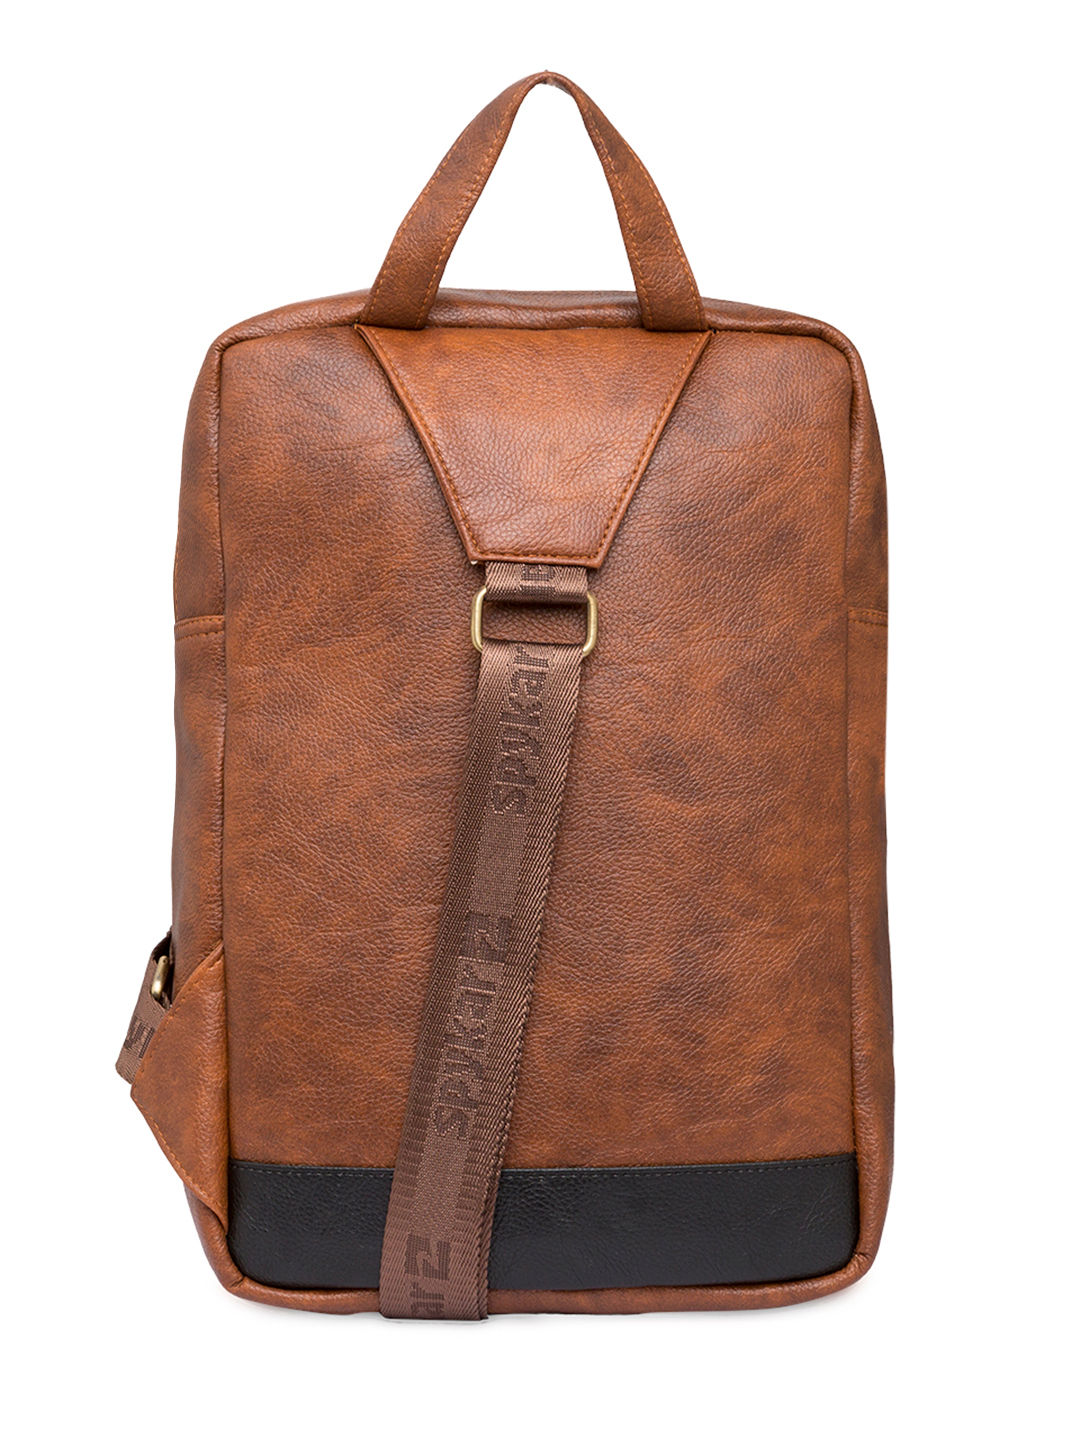 Spykar Tan Polyester Backpack